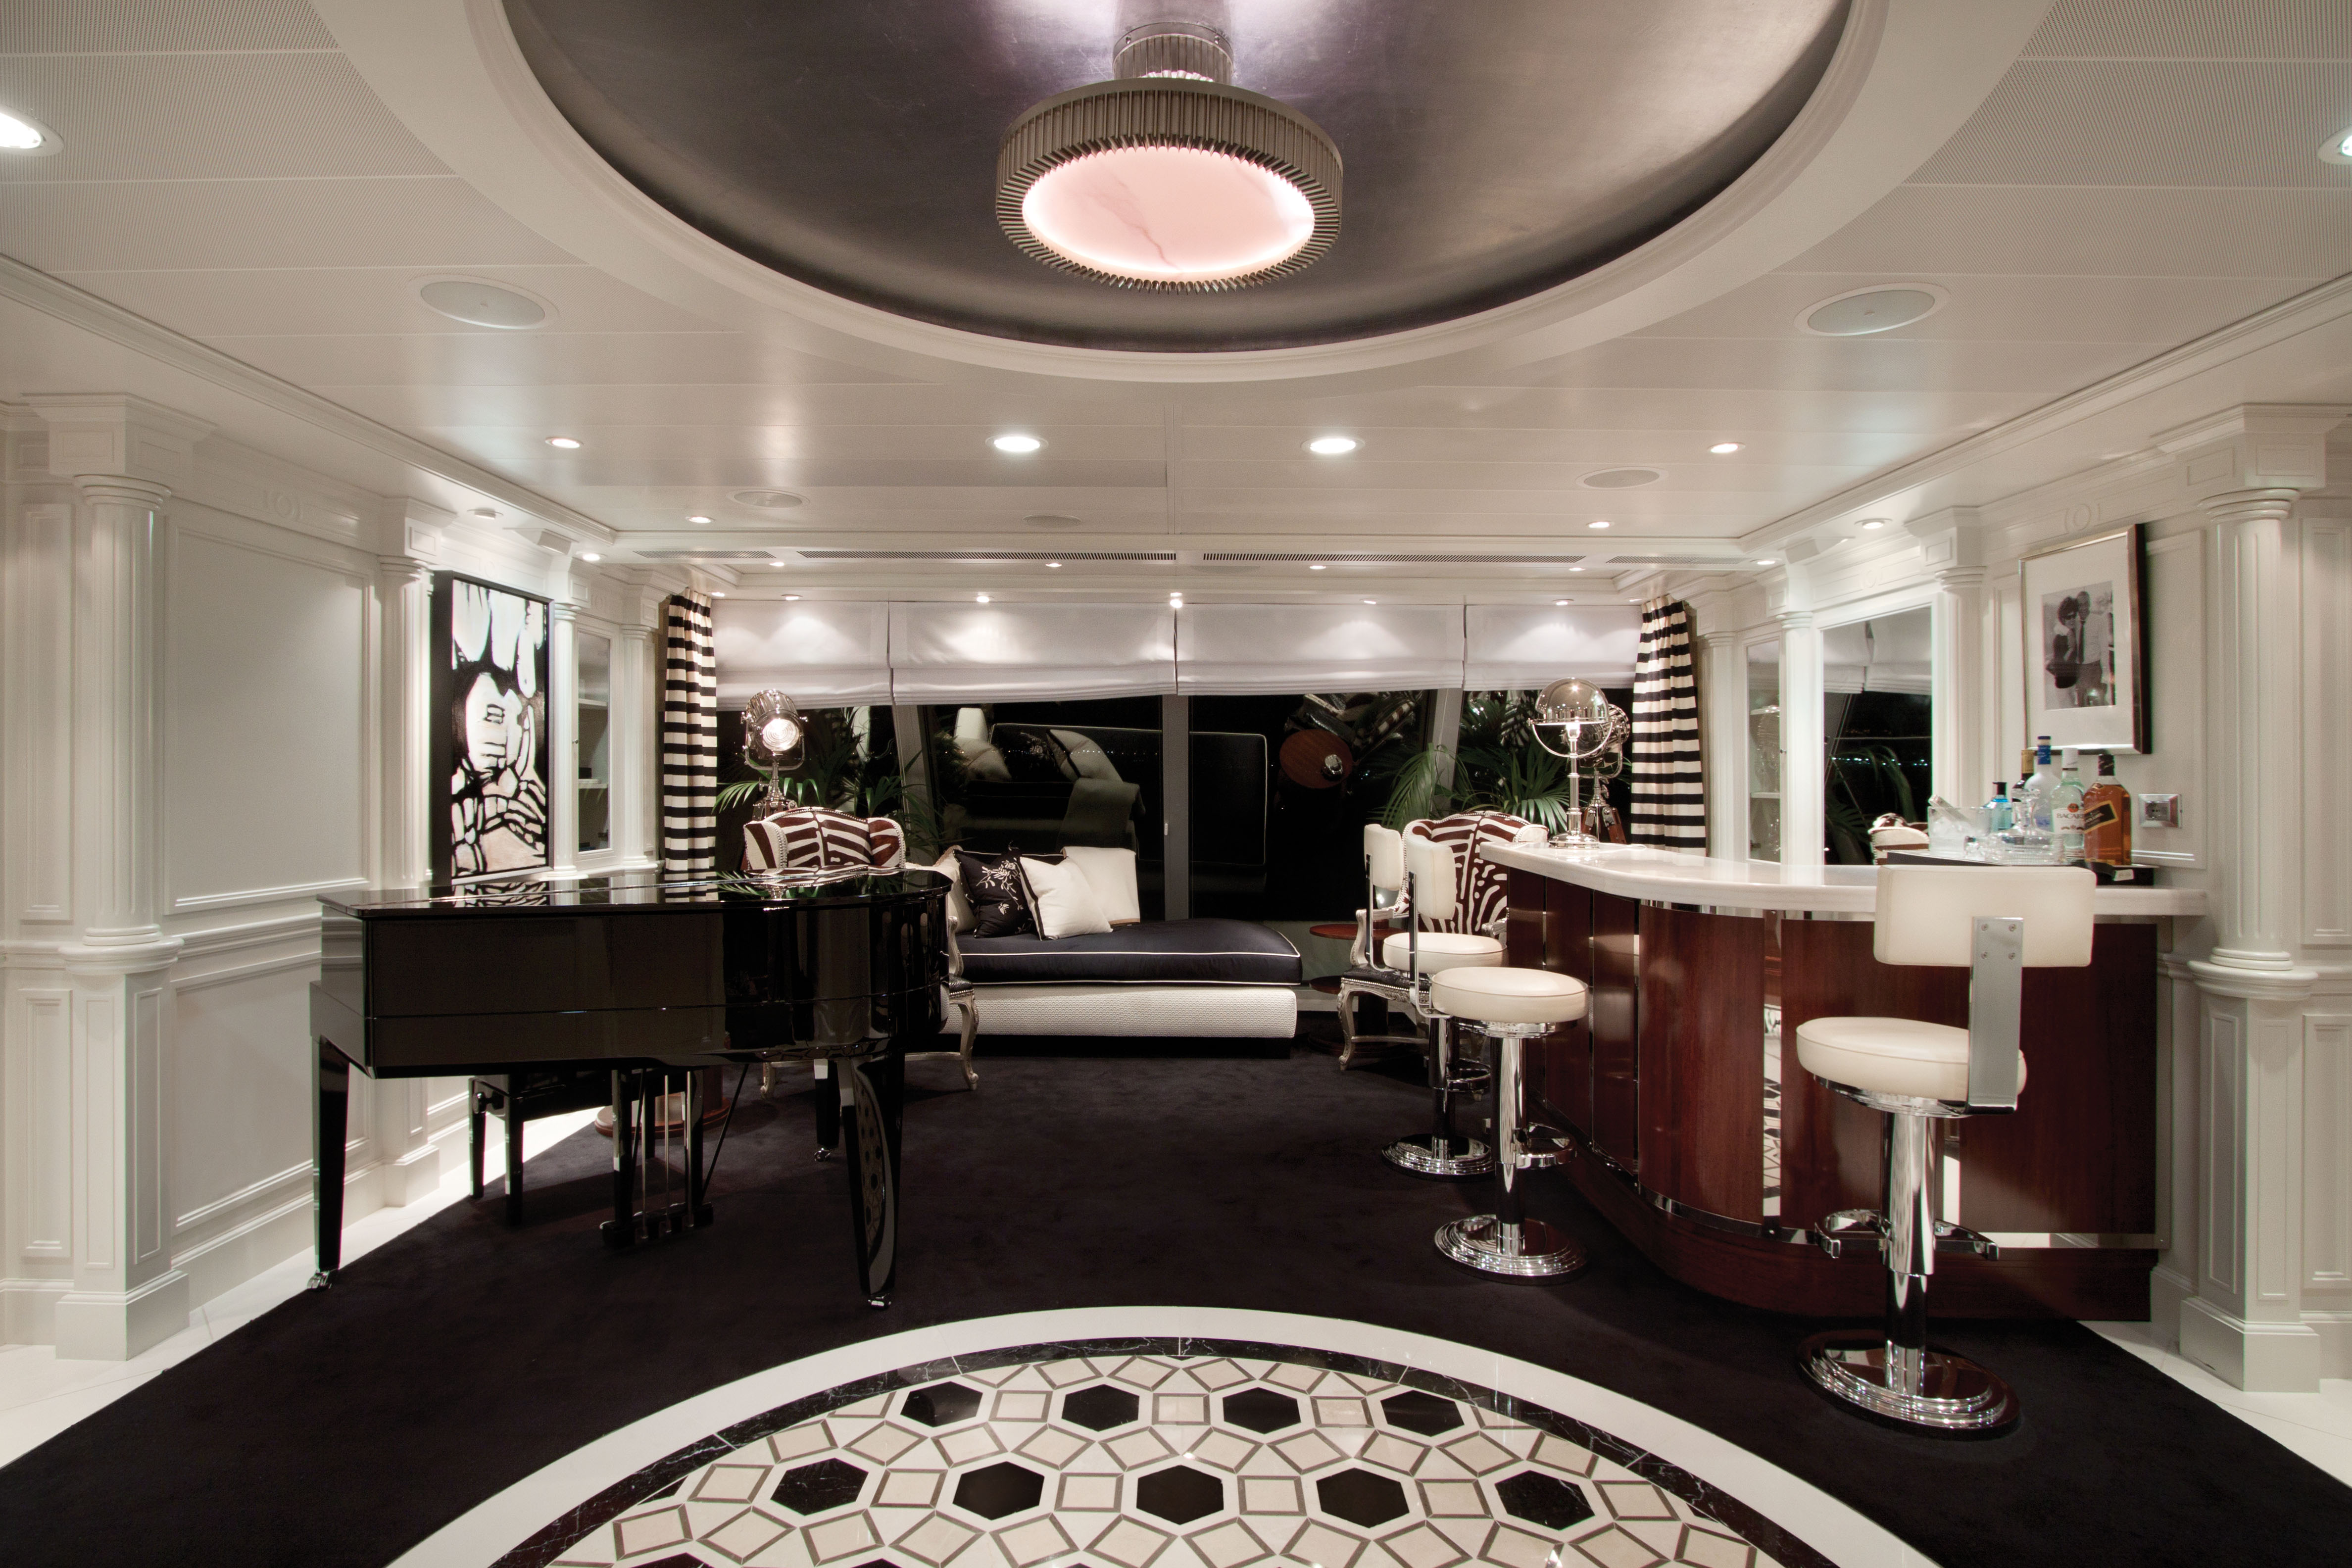 Oceania Cruises Oceania Class Accommodation Owners Foyer.jpg